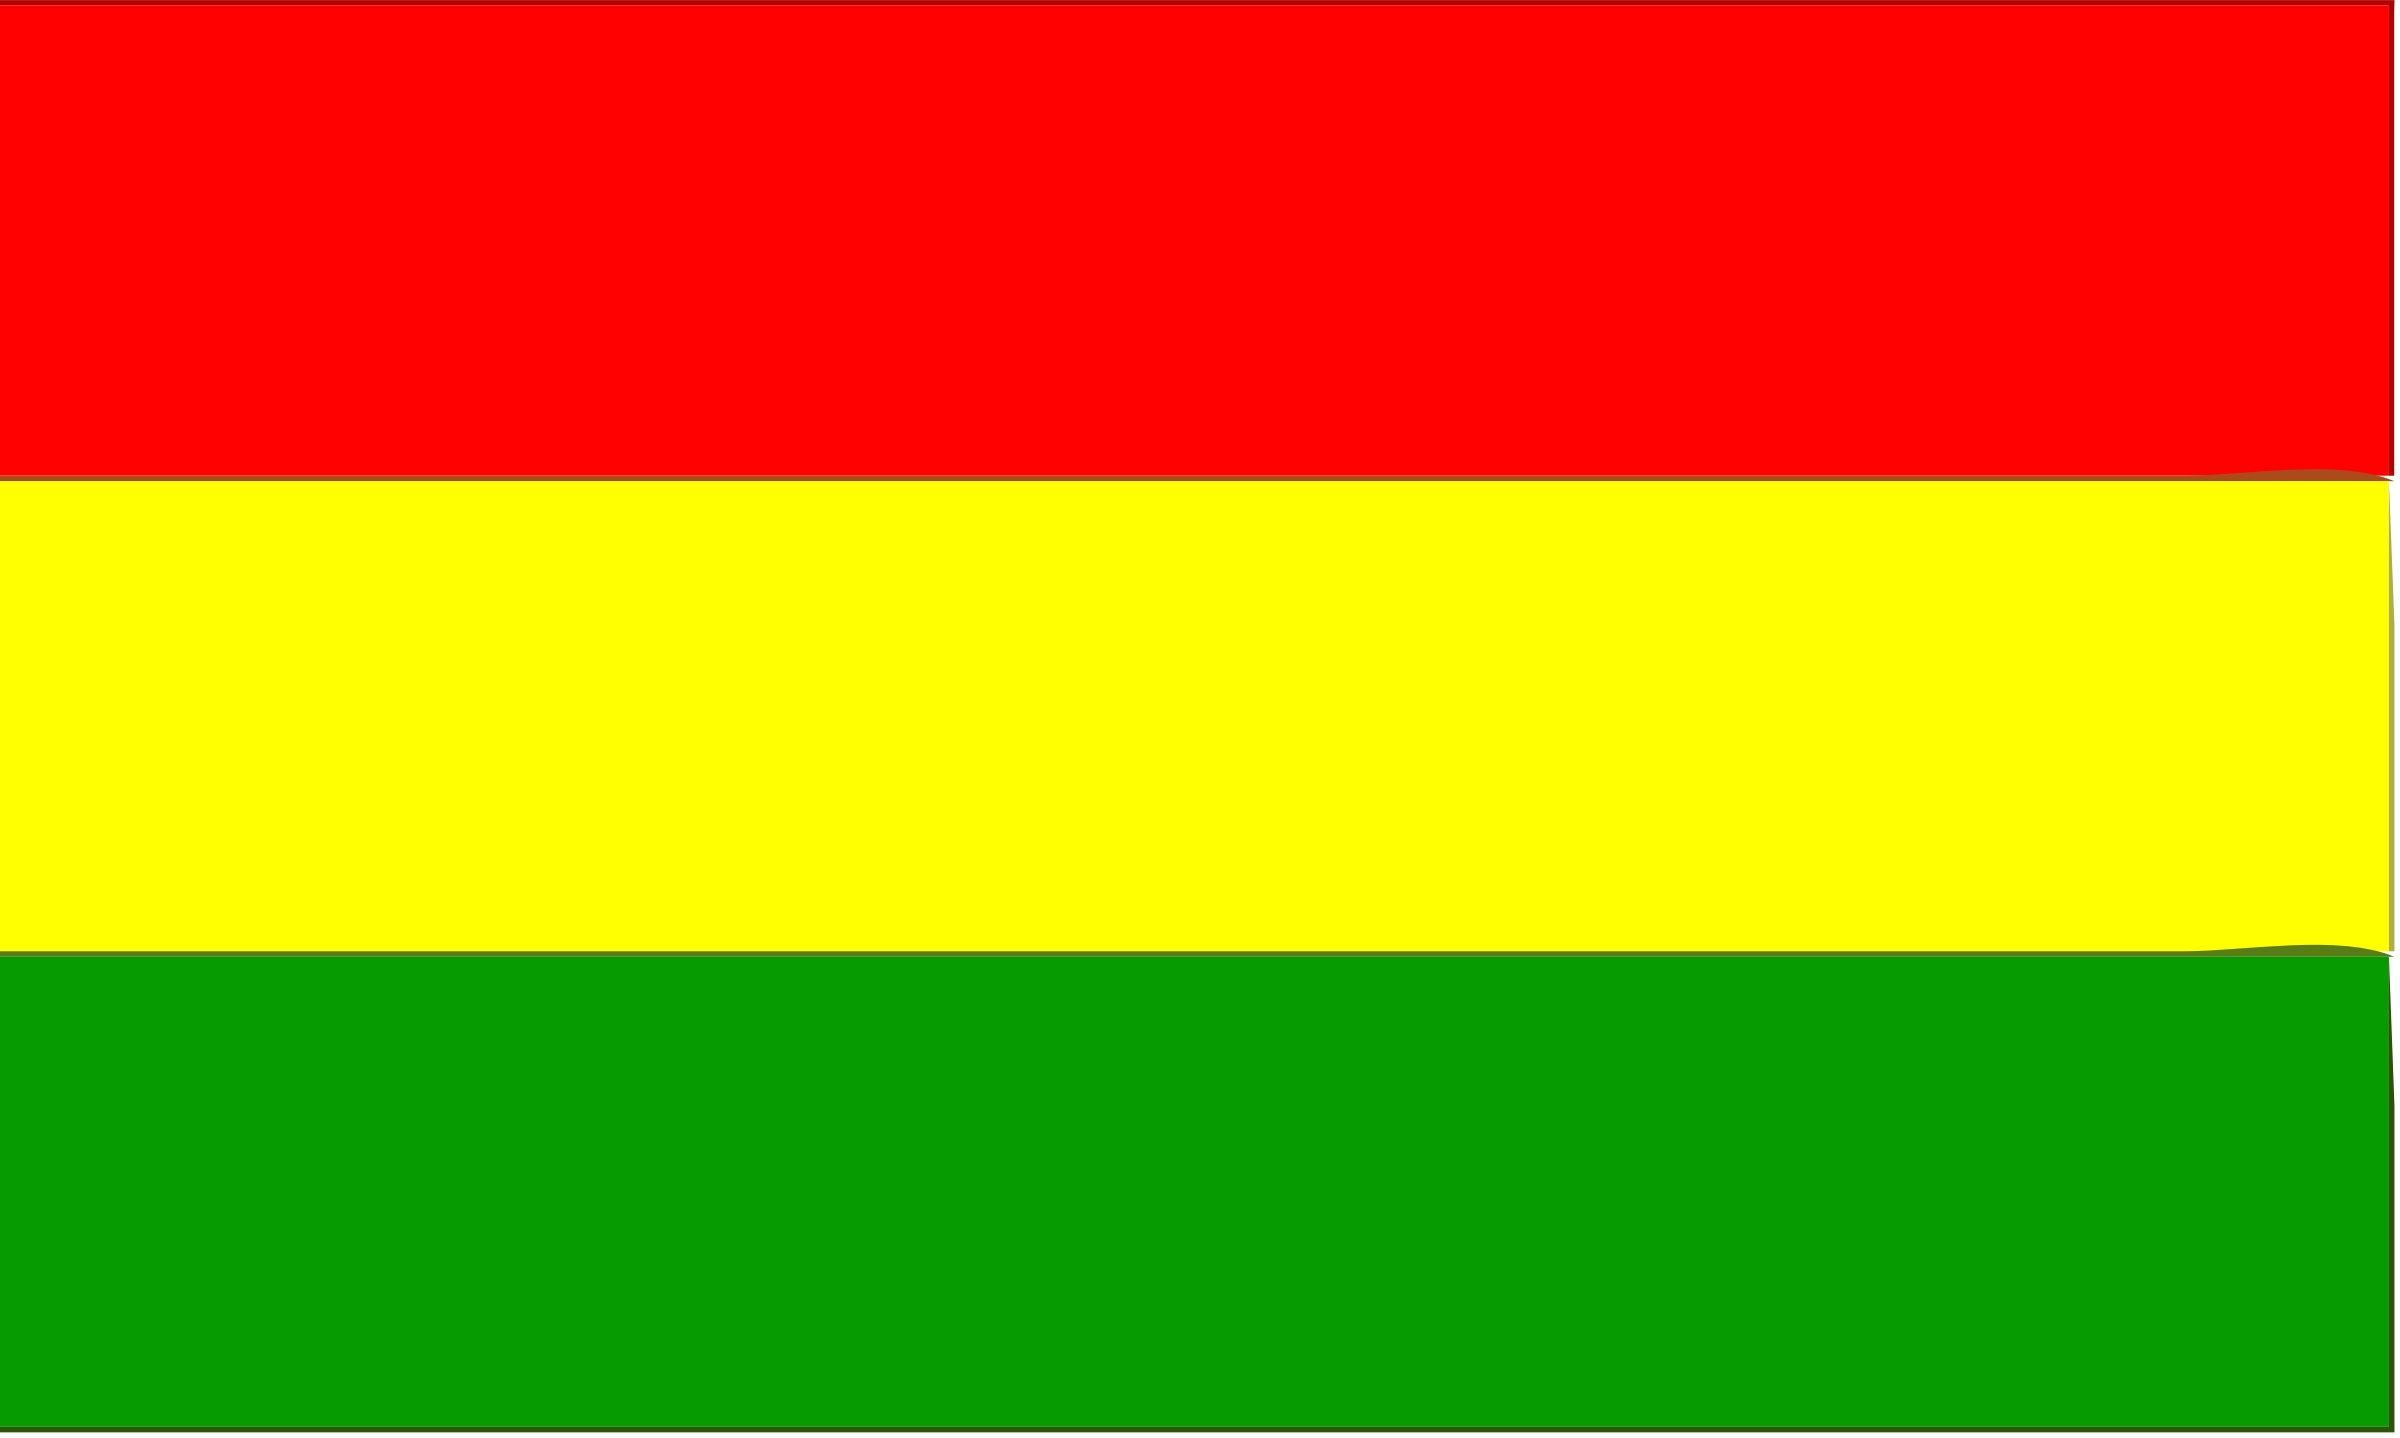 Flag of Bolivia by Joesph